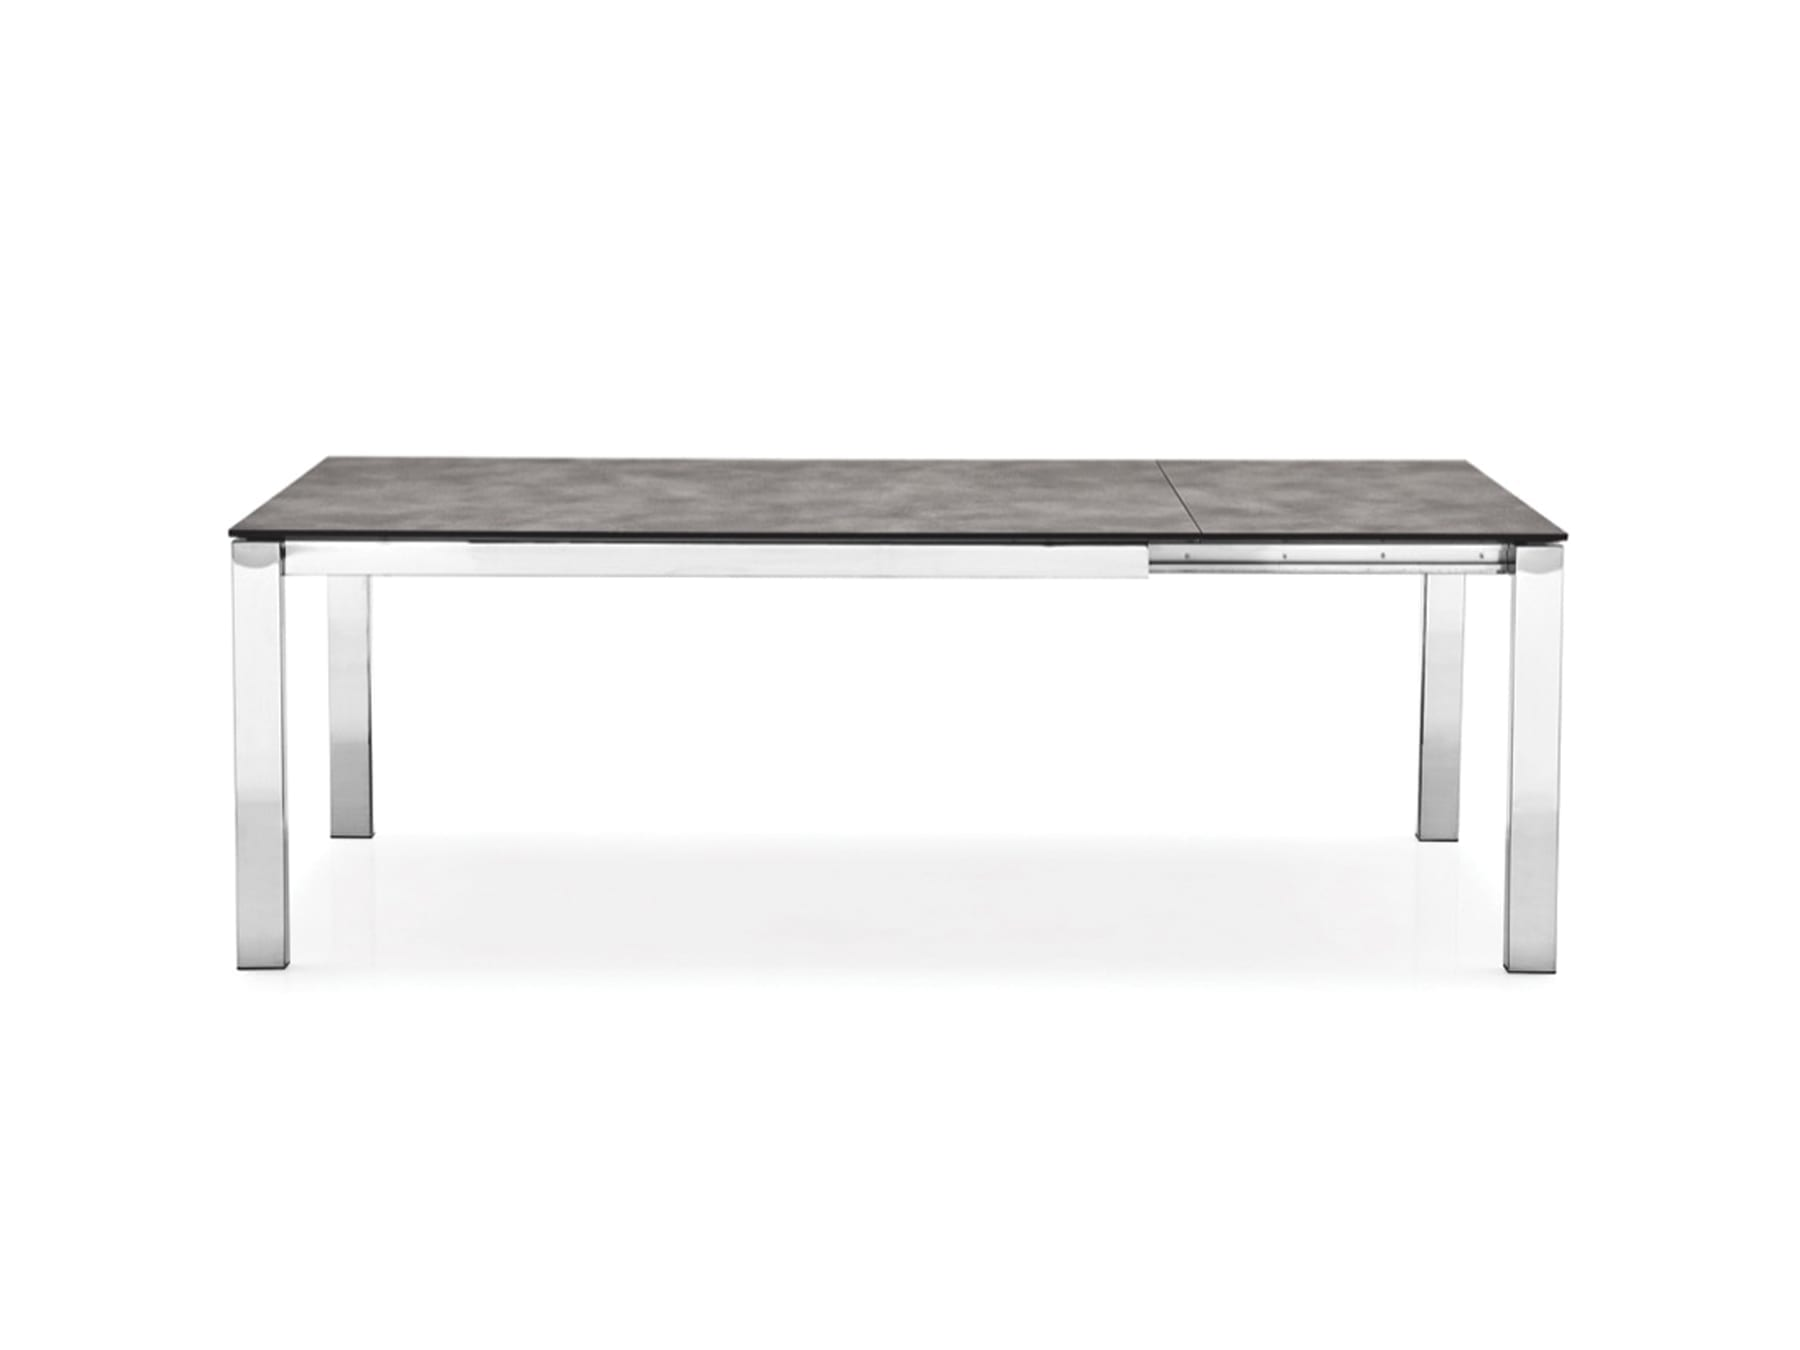 Calligaris baron extension dining table mckenzie willis for Calligaris baron